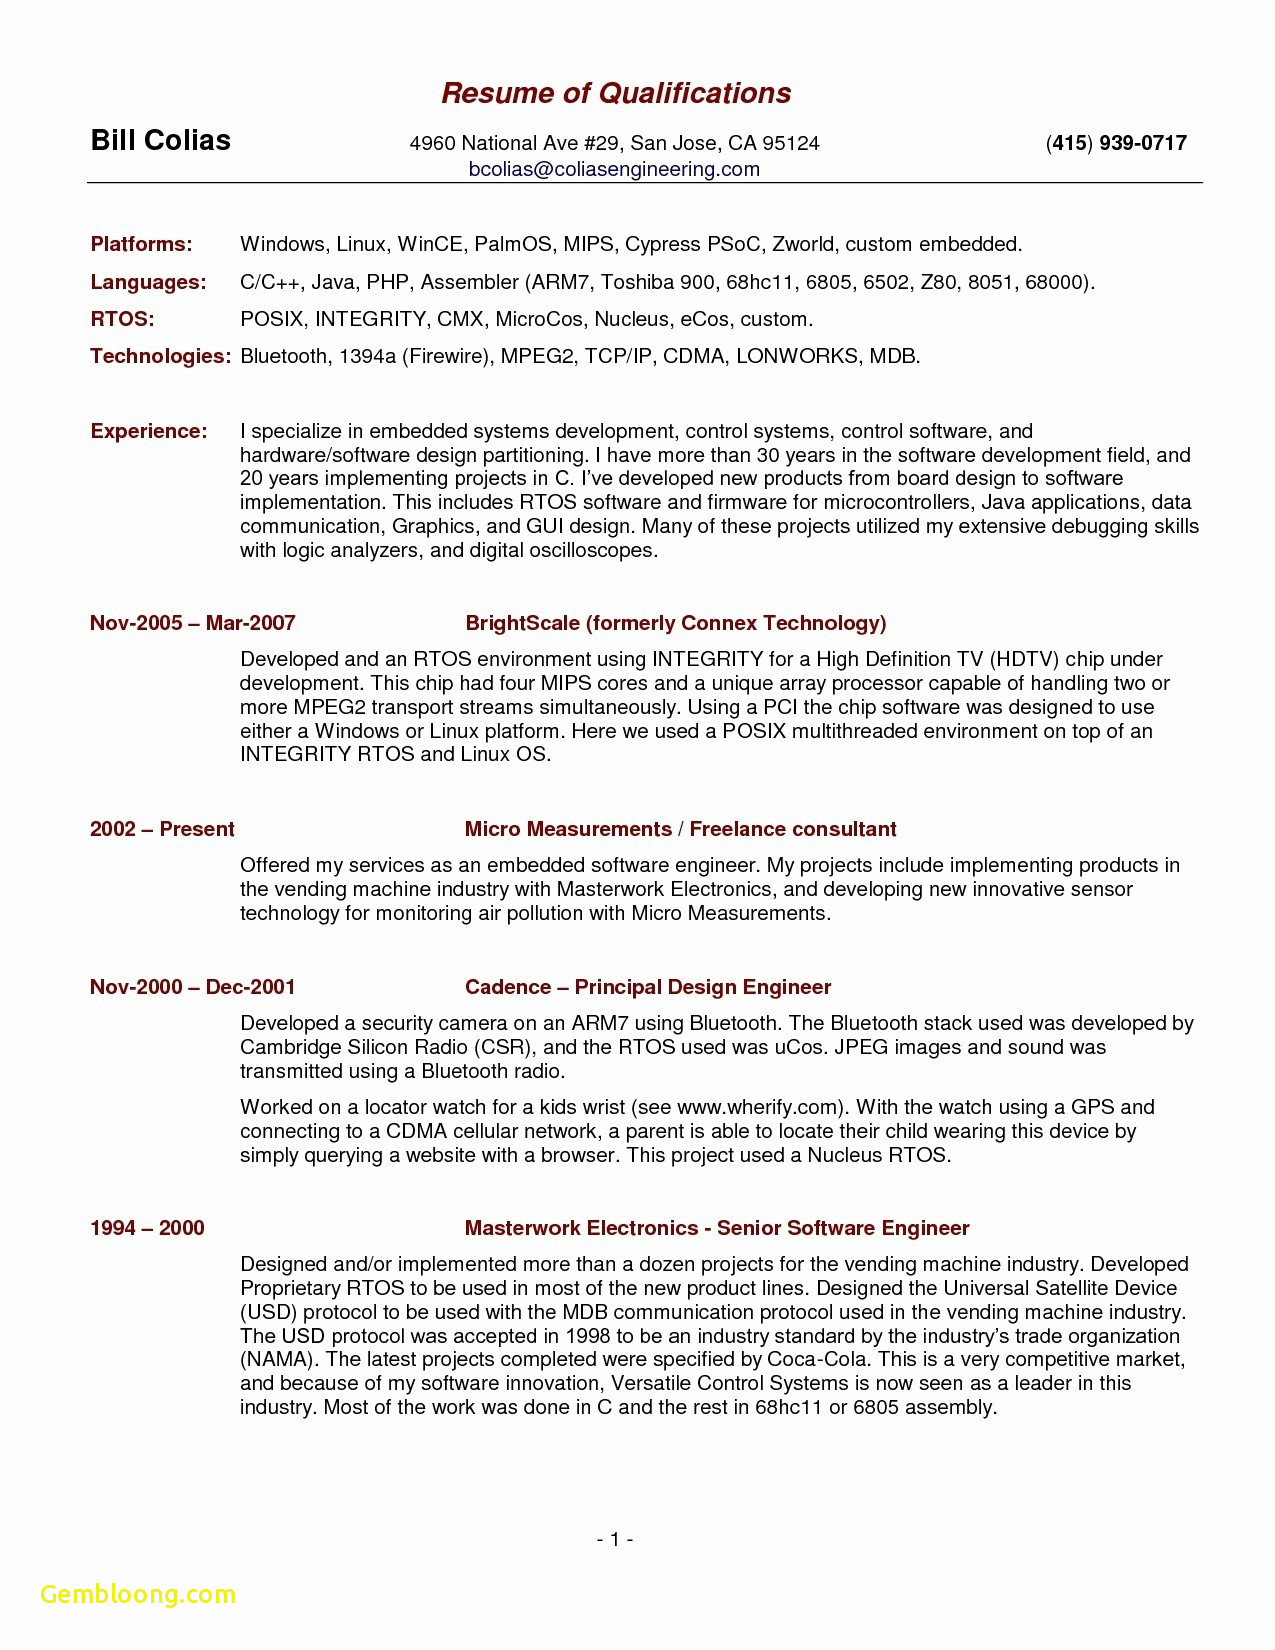 Find Resumes Online - Download Beautiful Resume Templets